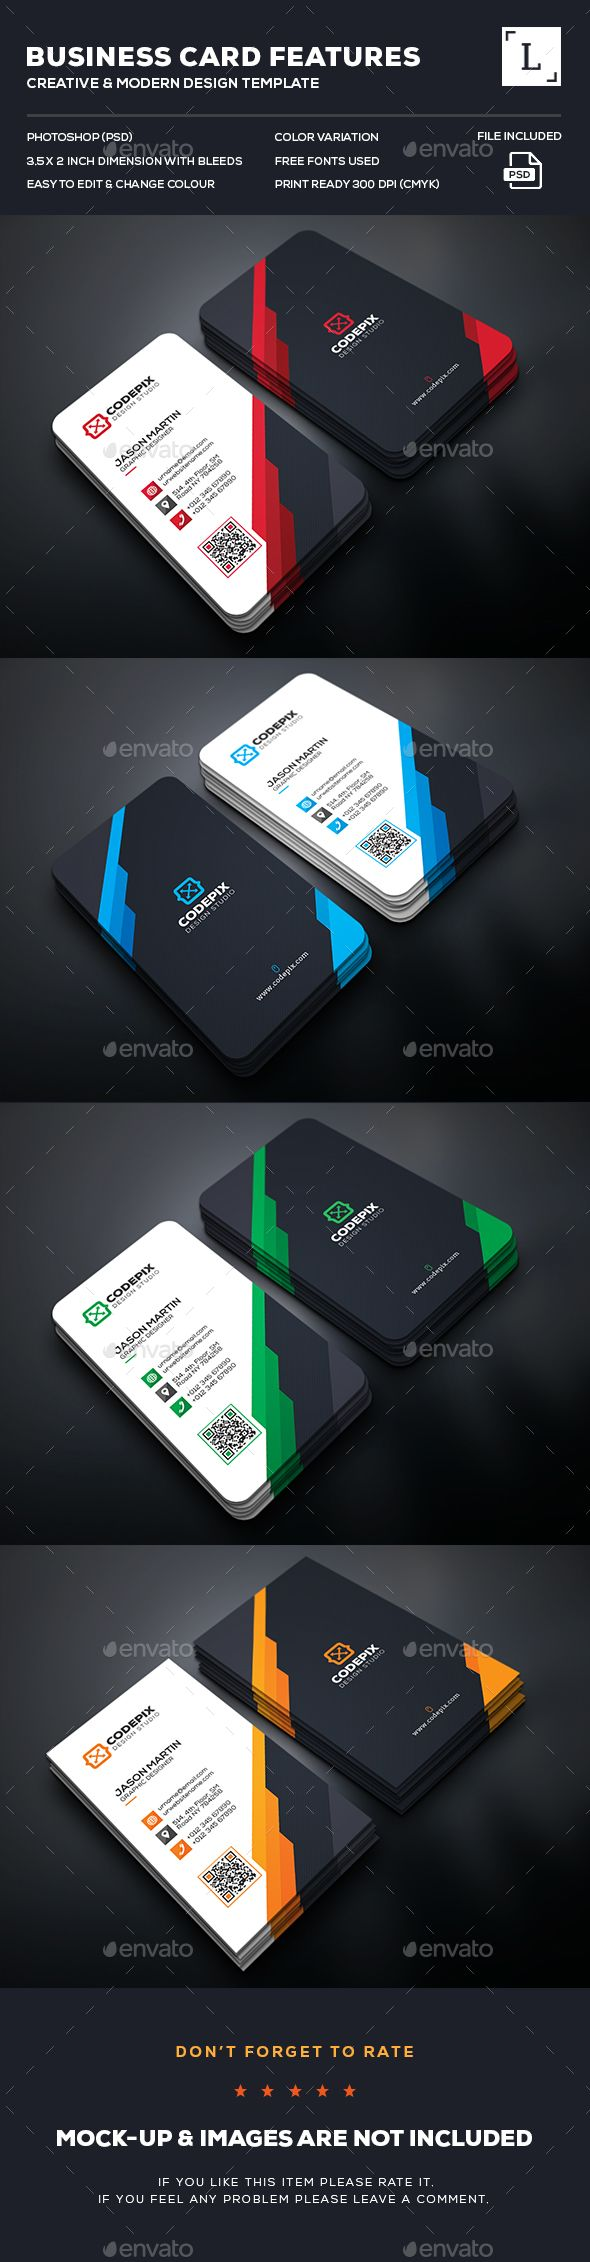 Creative Business Card Template PSD. Download here: http://graphicriver.net/item/creative-business-card/15944476?ref=ksioks